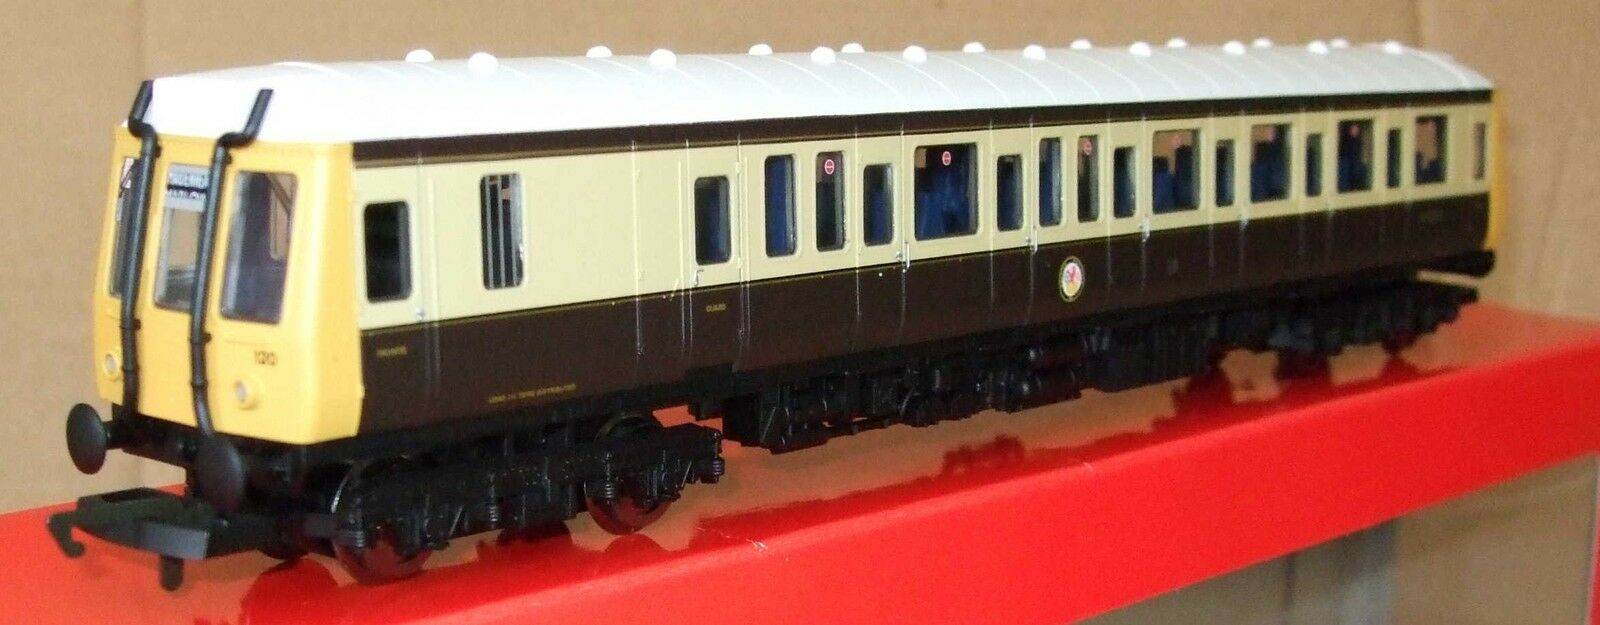 Hornby R2644 Class 121 DMB W55020 BR Chocolate & Cream Livery NEW